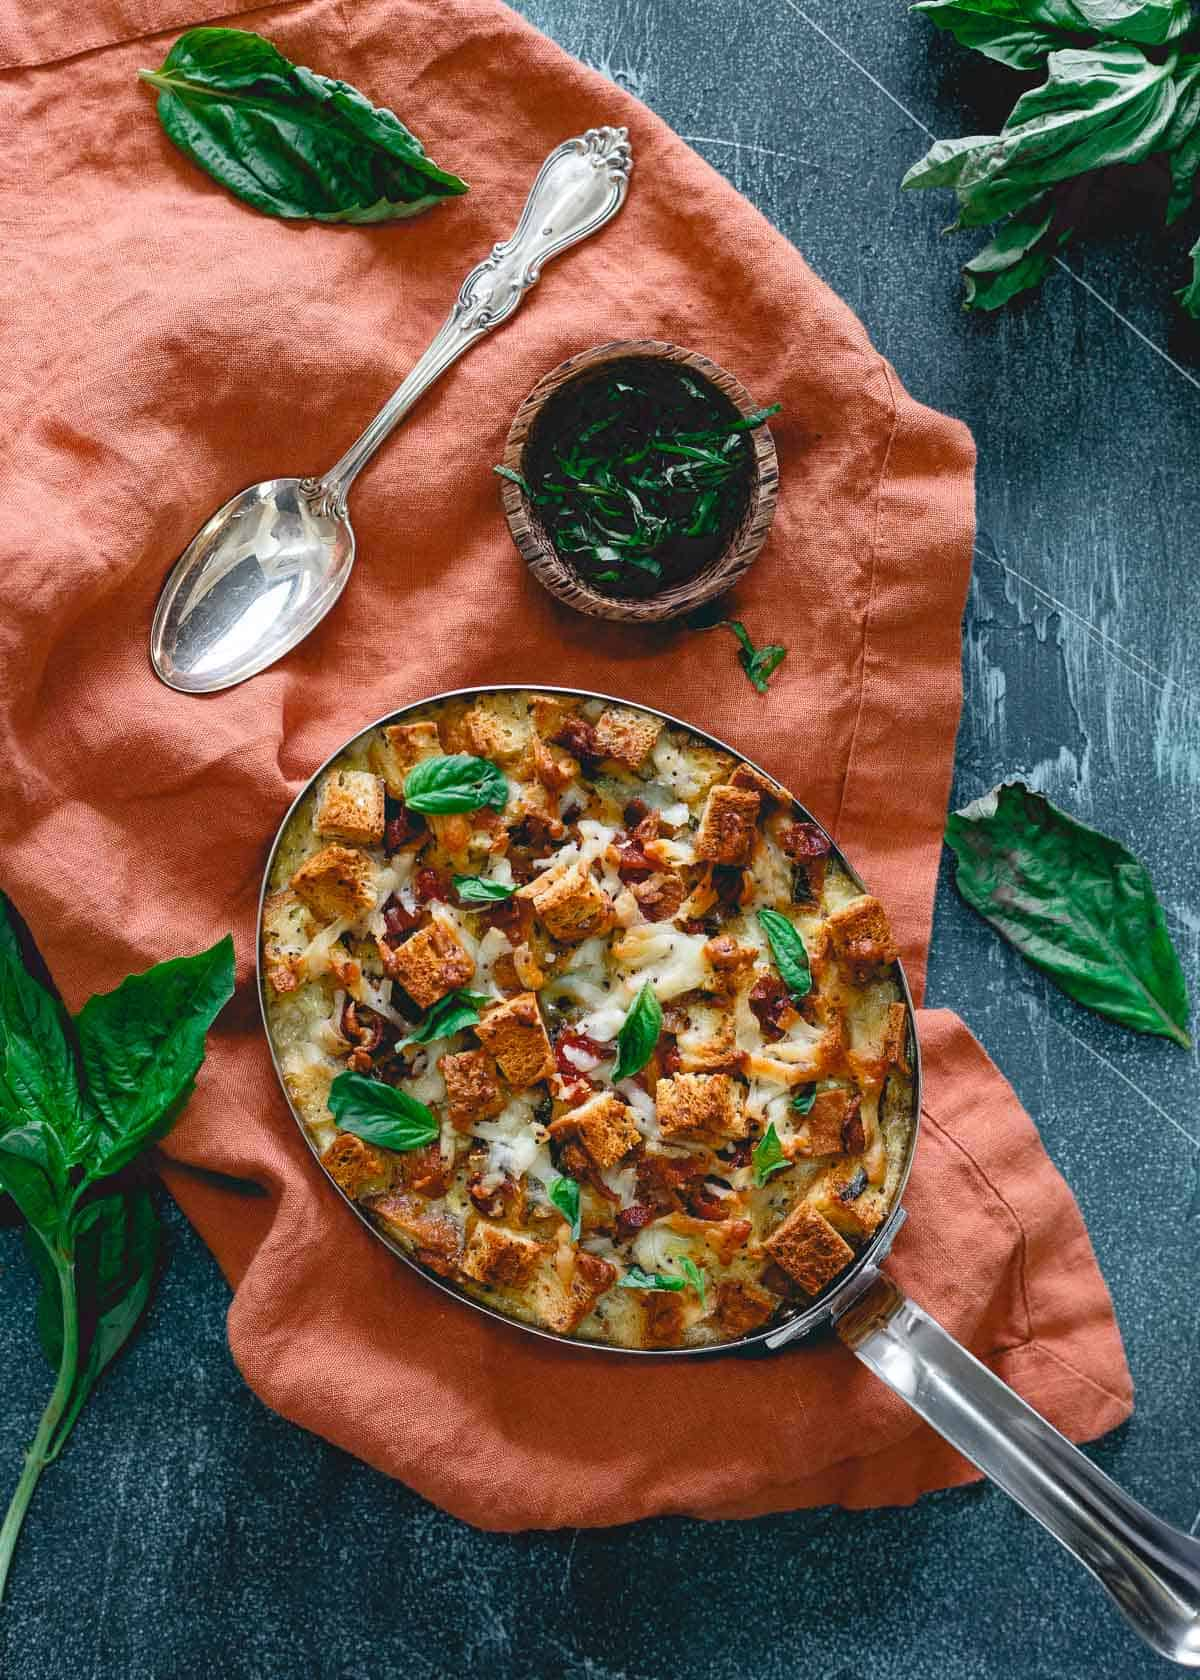 This everything bagel breakfast strata is perfect for Mother's Day. With bacon, cheese, basil and sun-dried tomatoes it's a delicious gluten-free brunch!